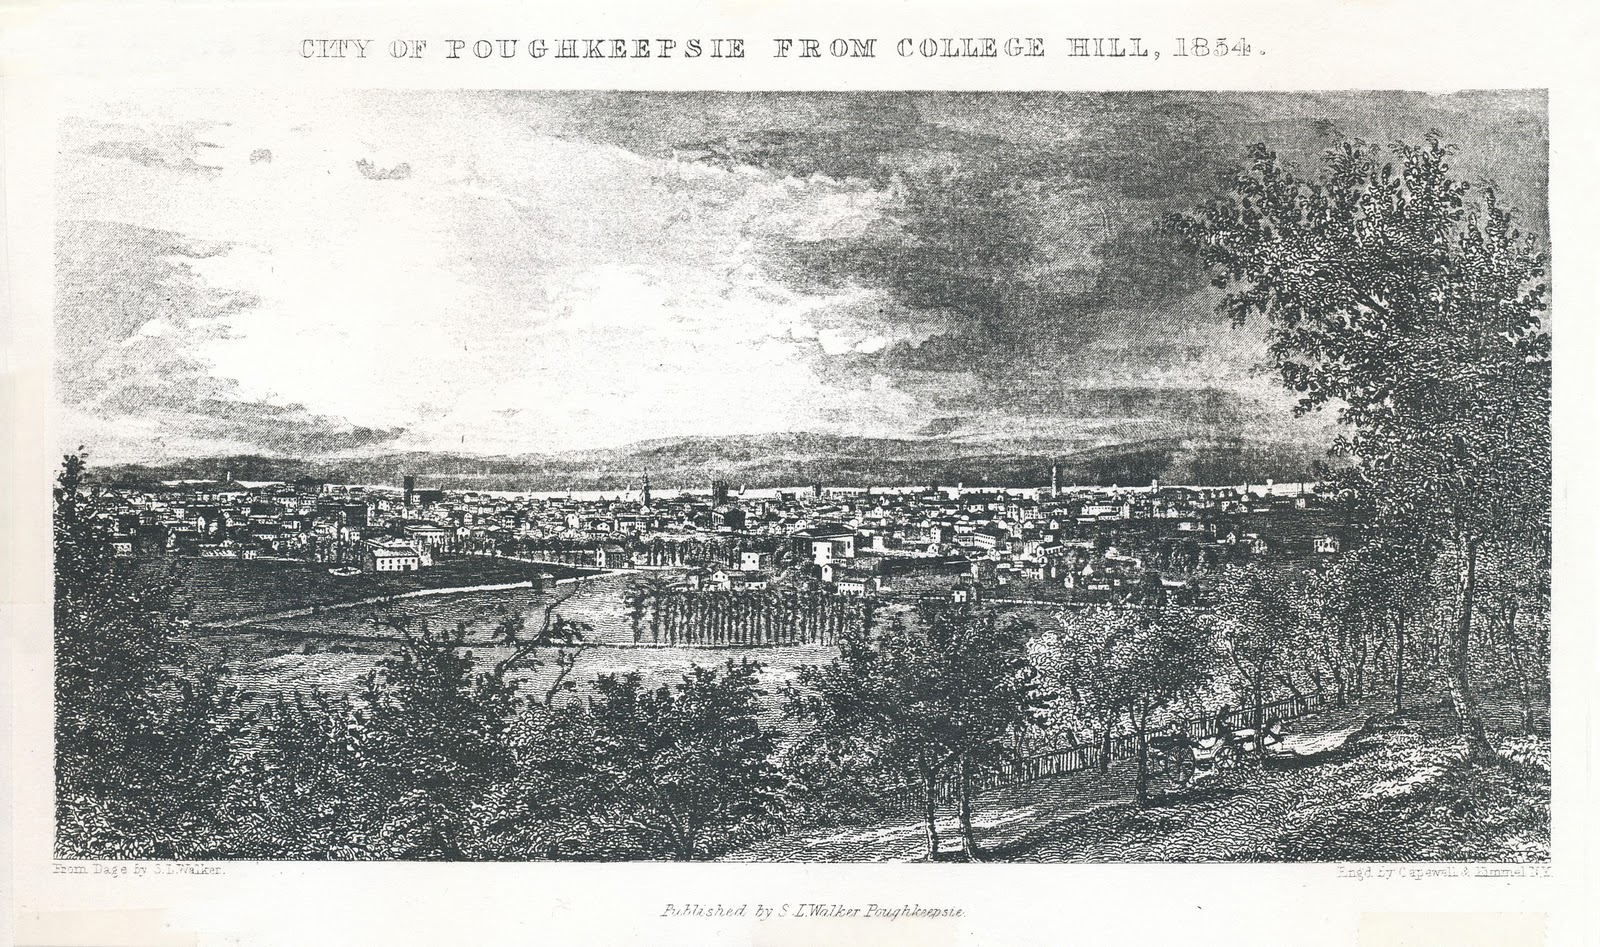 1854 Engraving of Poughkeepsie, New York